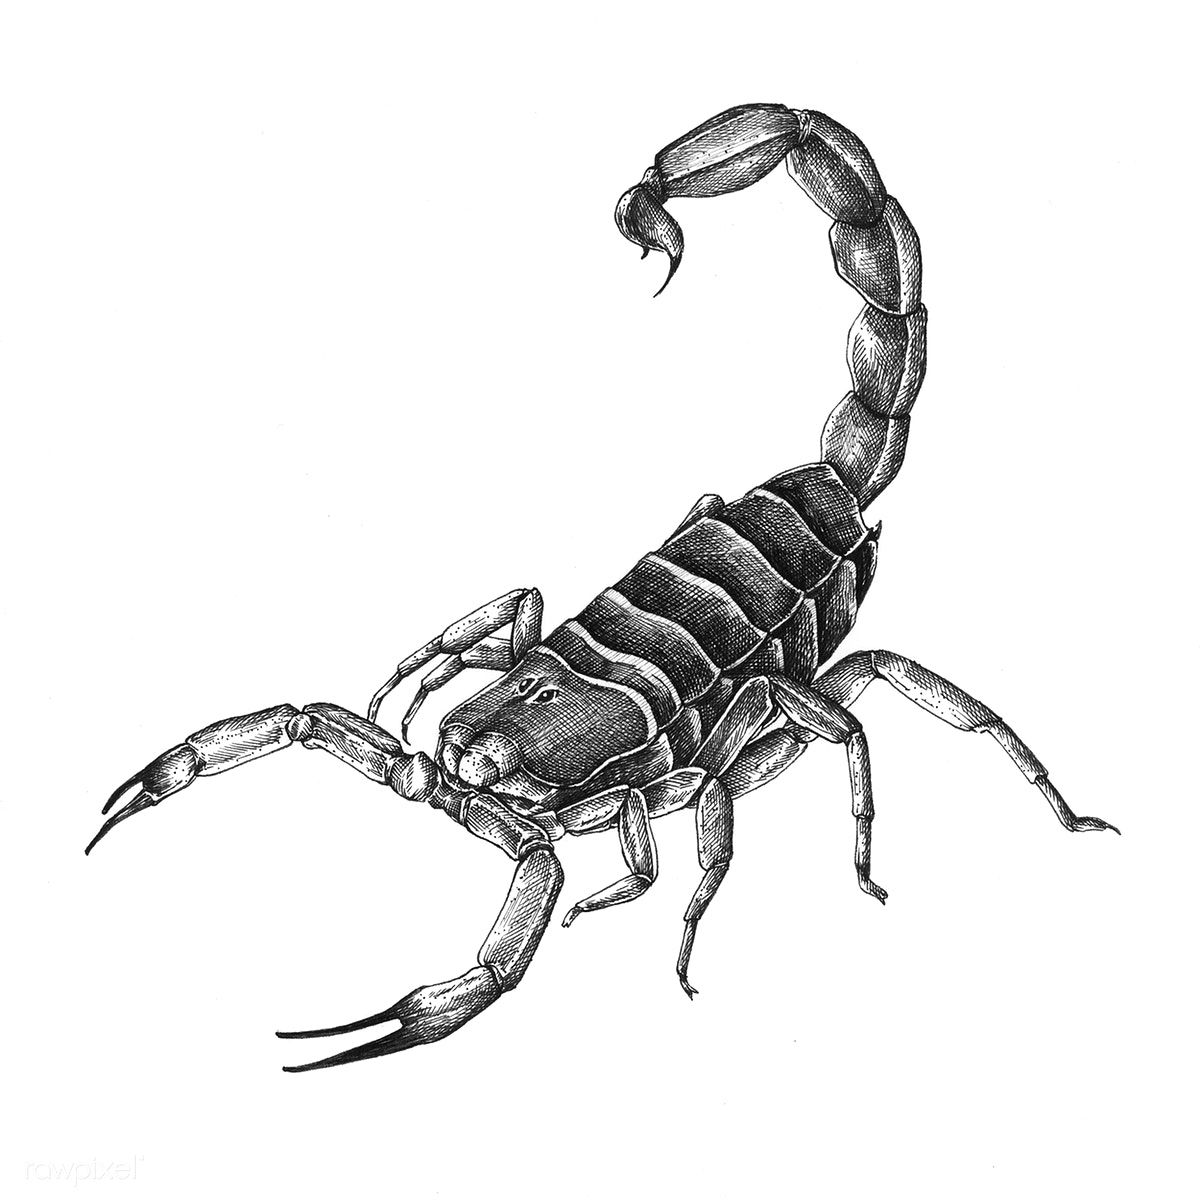 Hand drawn scorpion isolated on background | free image by rawpixel.com Vẽ Tay,